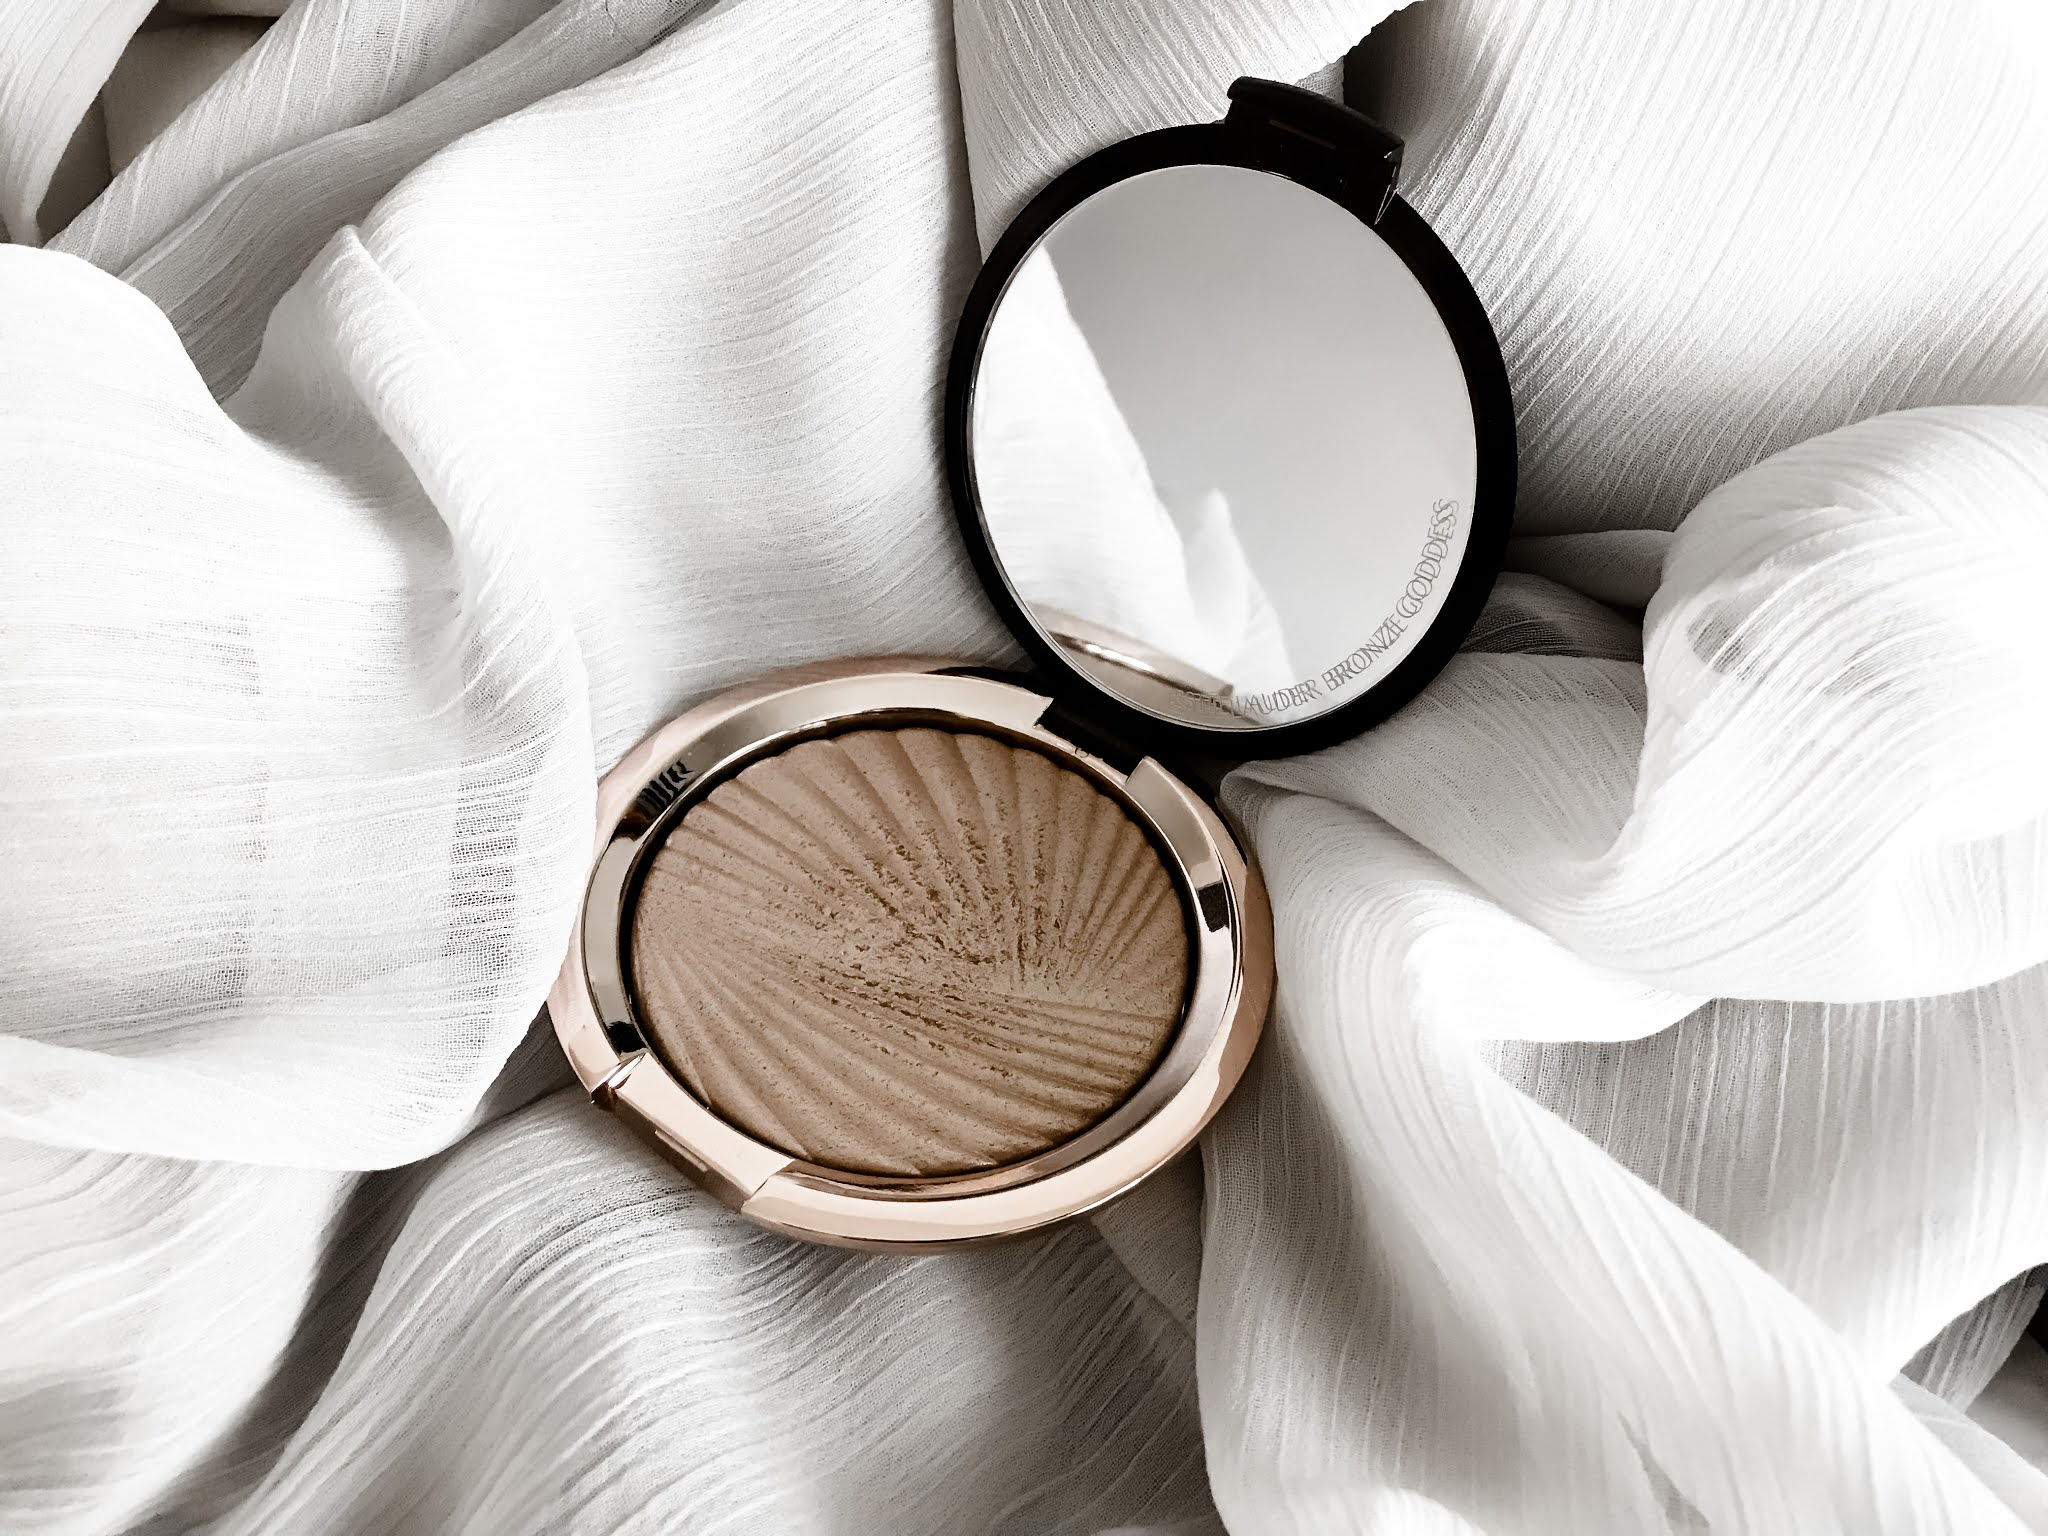 Estee Lauder Bronze Goddess Highlighter